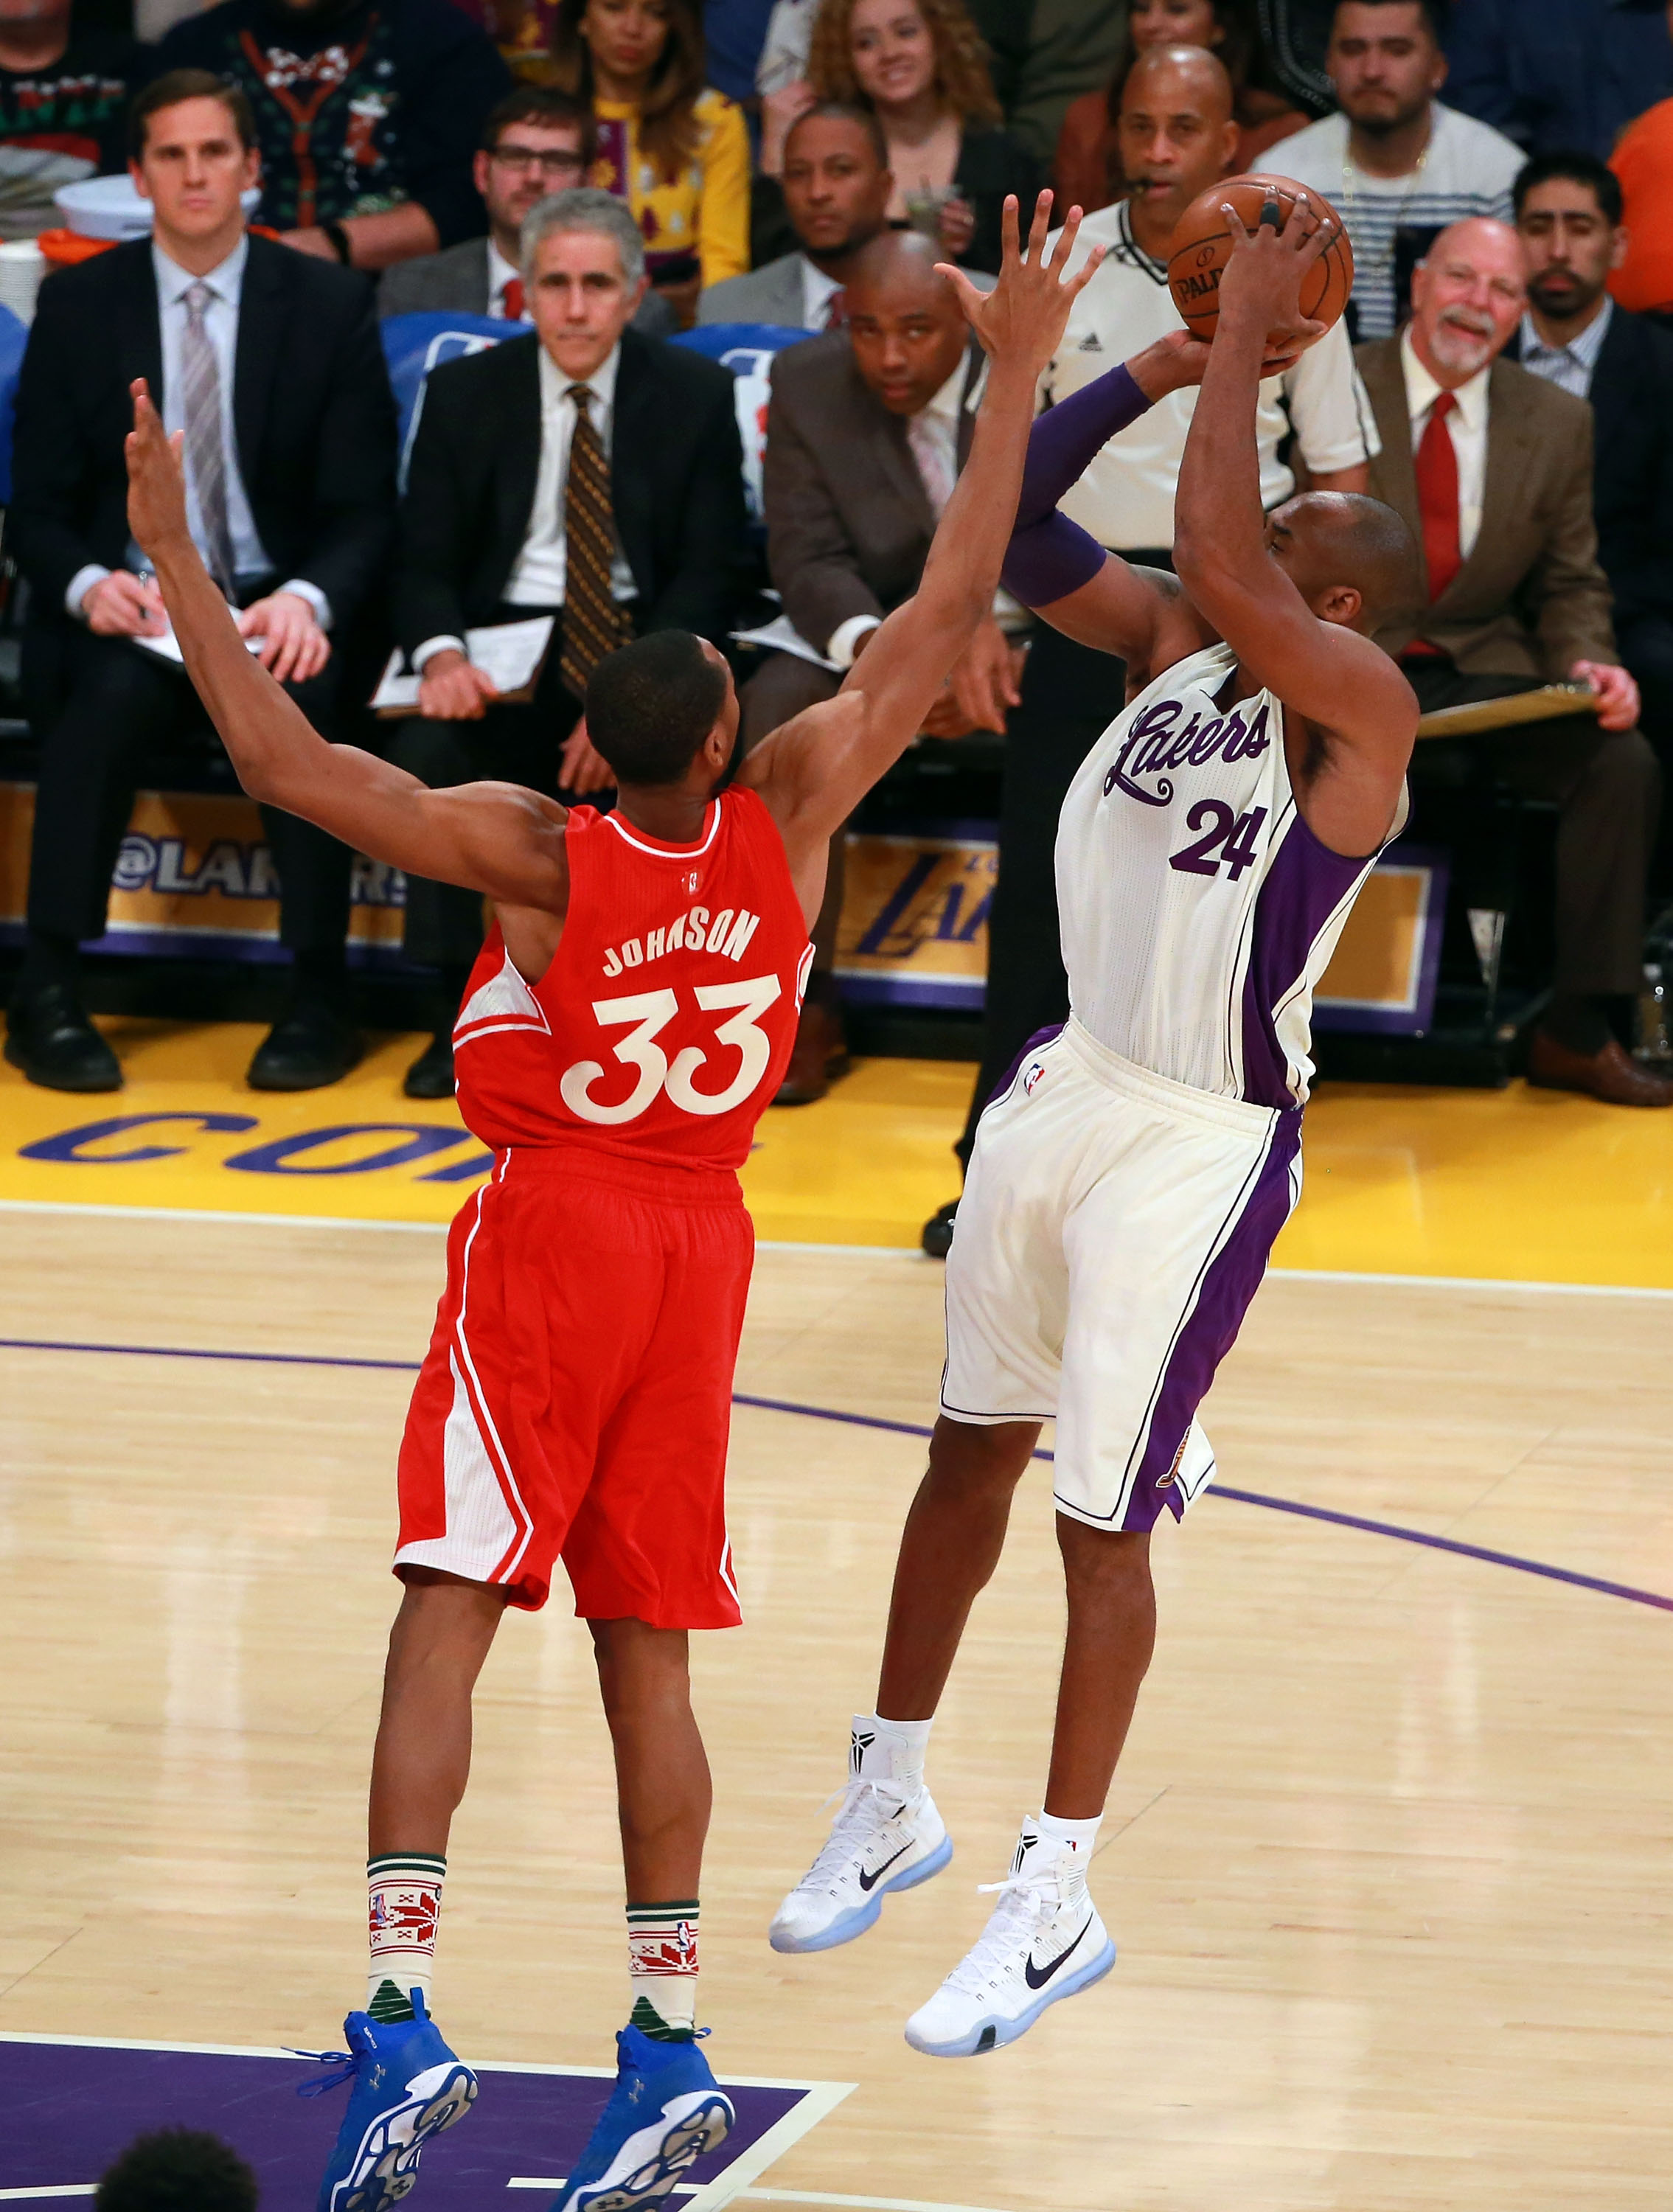 LOS ANGELES, CA - DECEMBER 25:  Kobe Bryant #24 of the Los Angeles Lakers shoots a three-point shot against Wesley Johnson #33 of the Los Angeles Clippers in the first half of the NBA game at Staples Center on December 25, 2015 in Los Angeles, California.